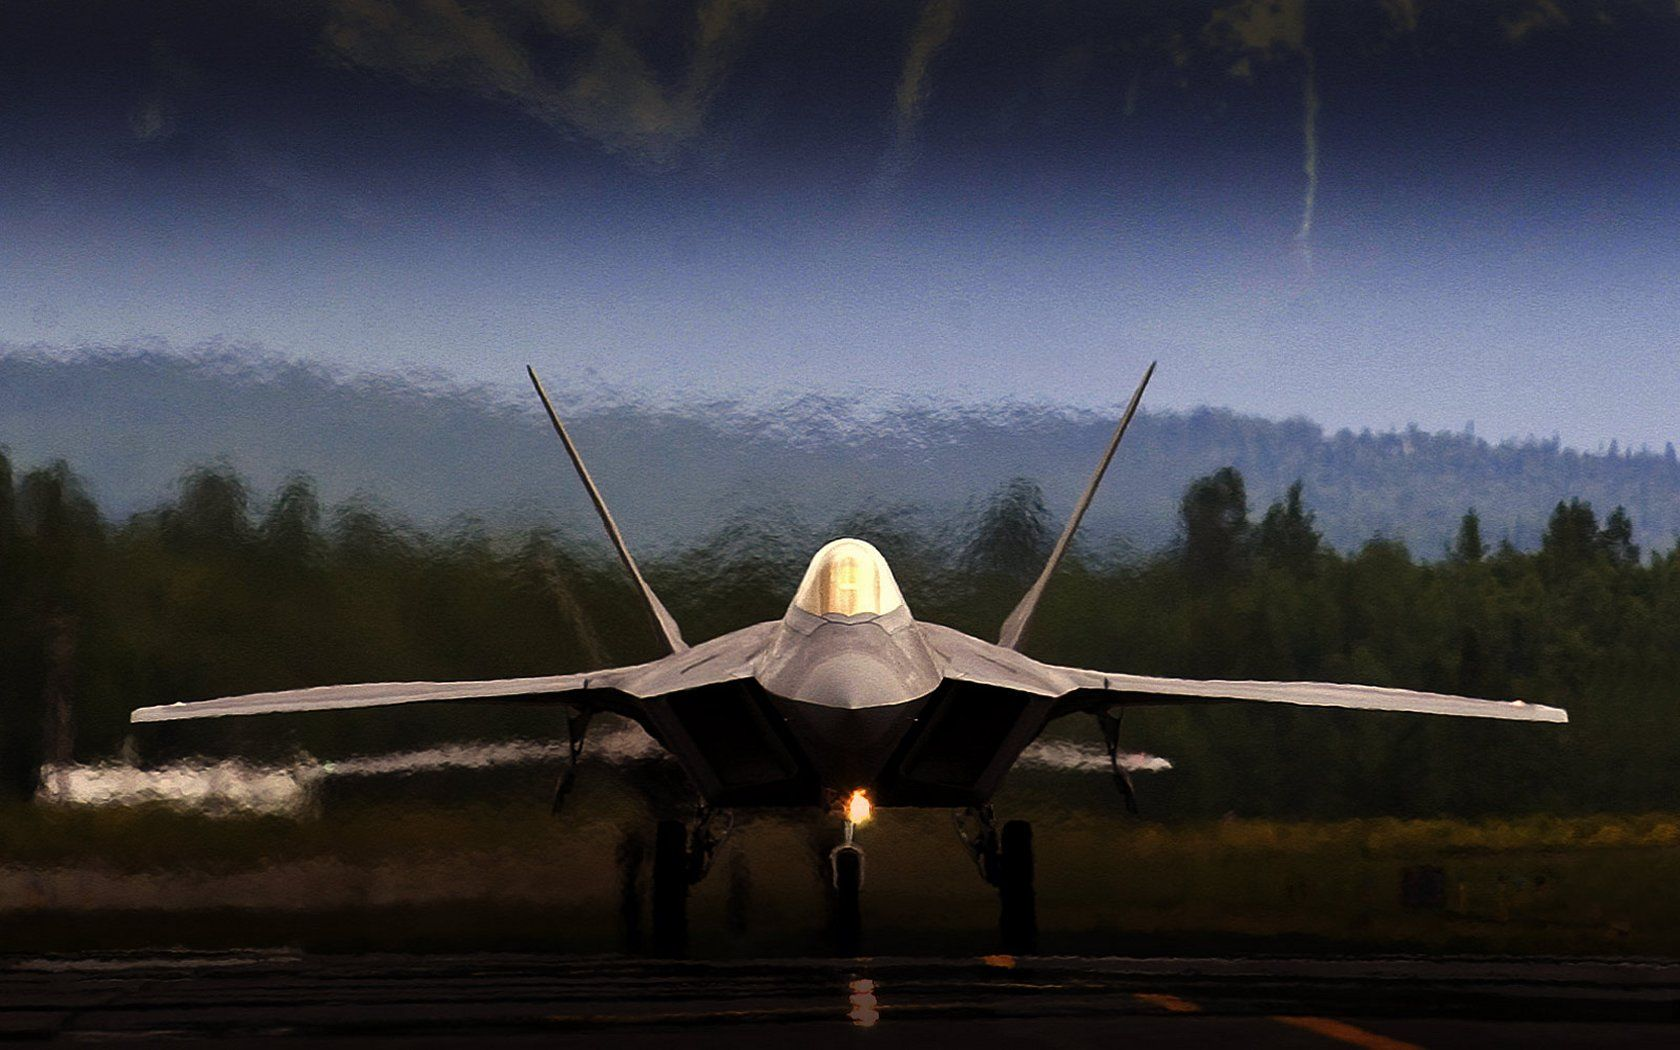 Lockheed Martin has over 20,000 Microsoft Project users.